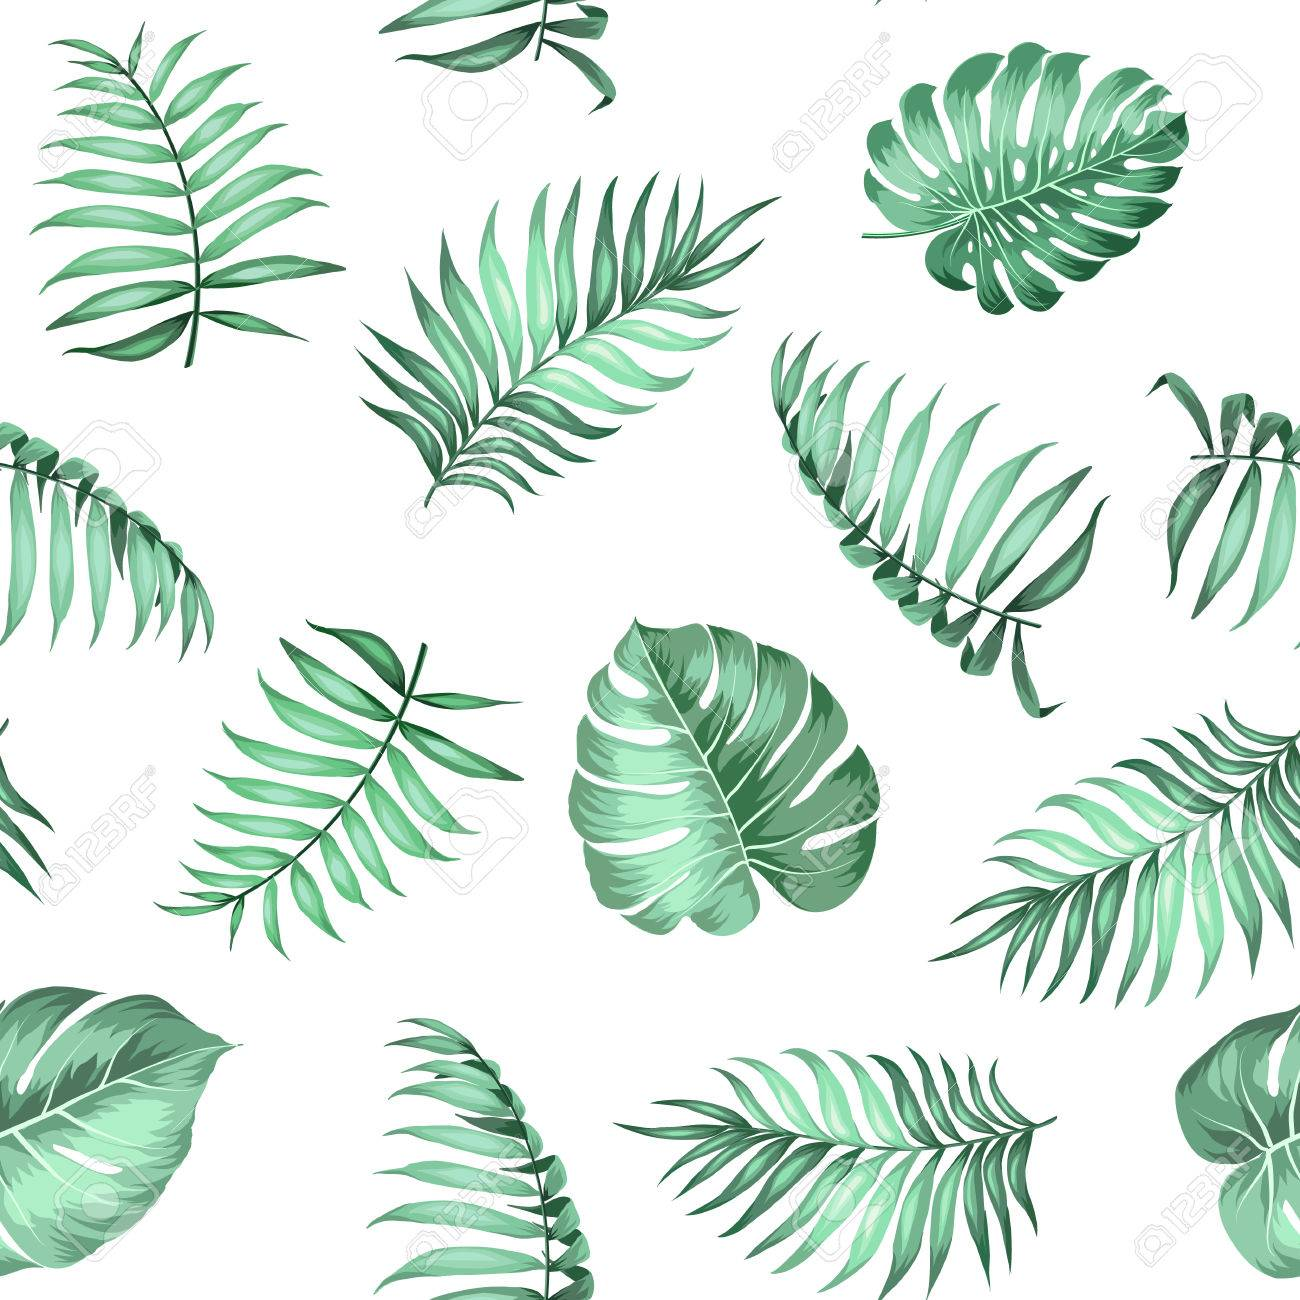 Topical palm leaves on seamless pattern for fabric texture. Vector illustration. - 61623961